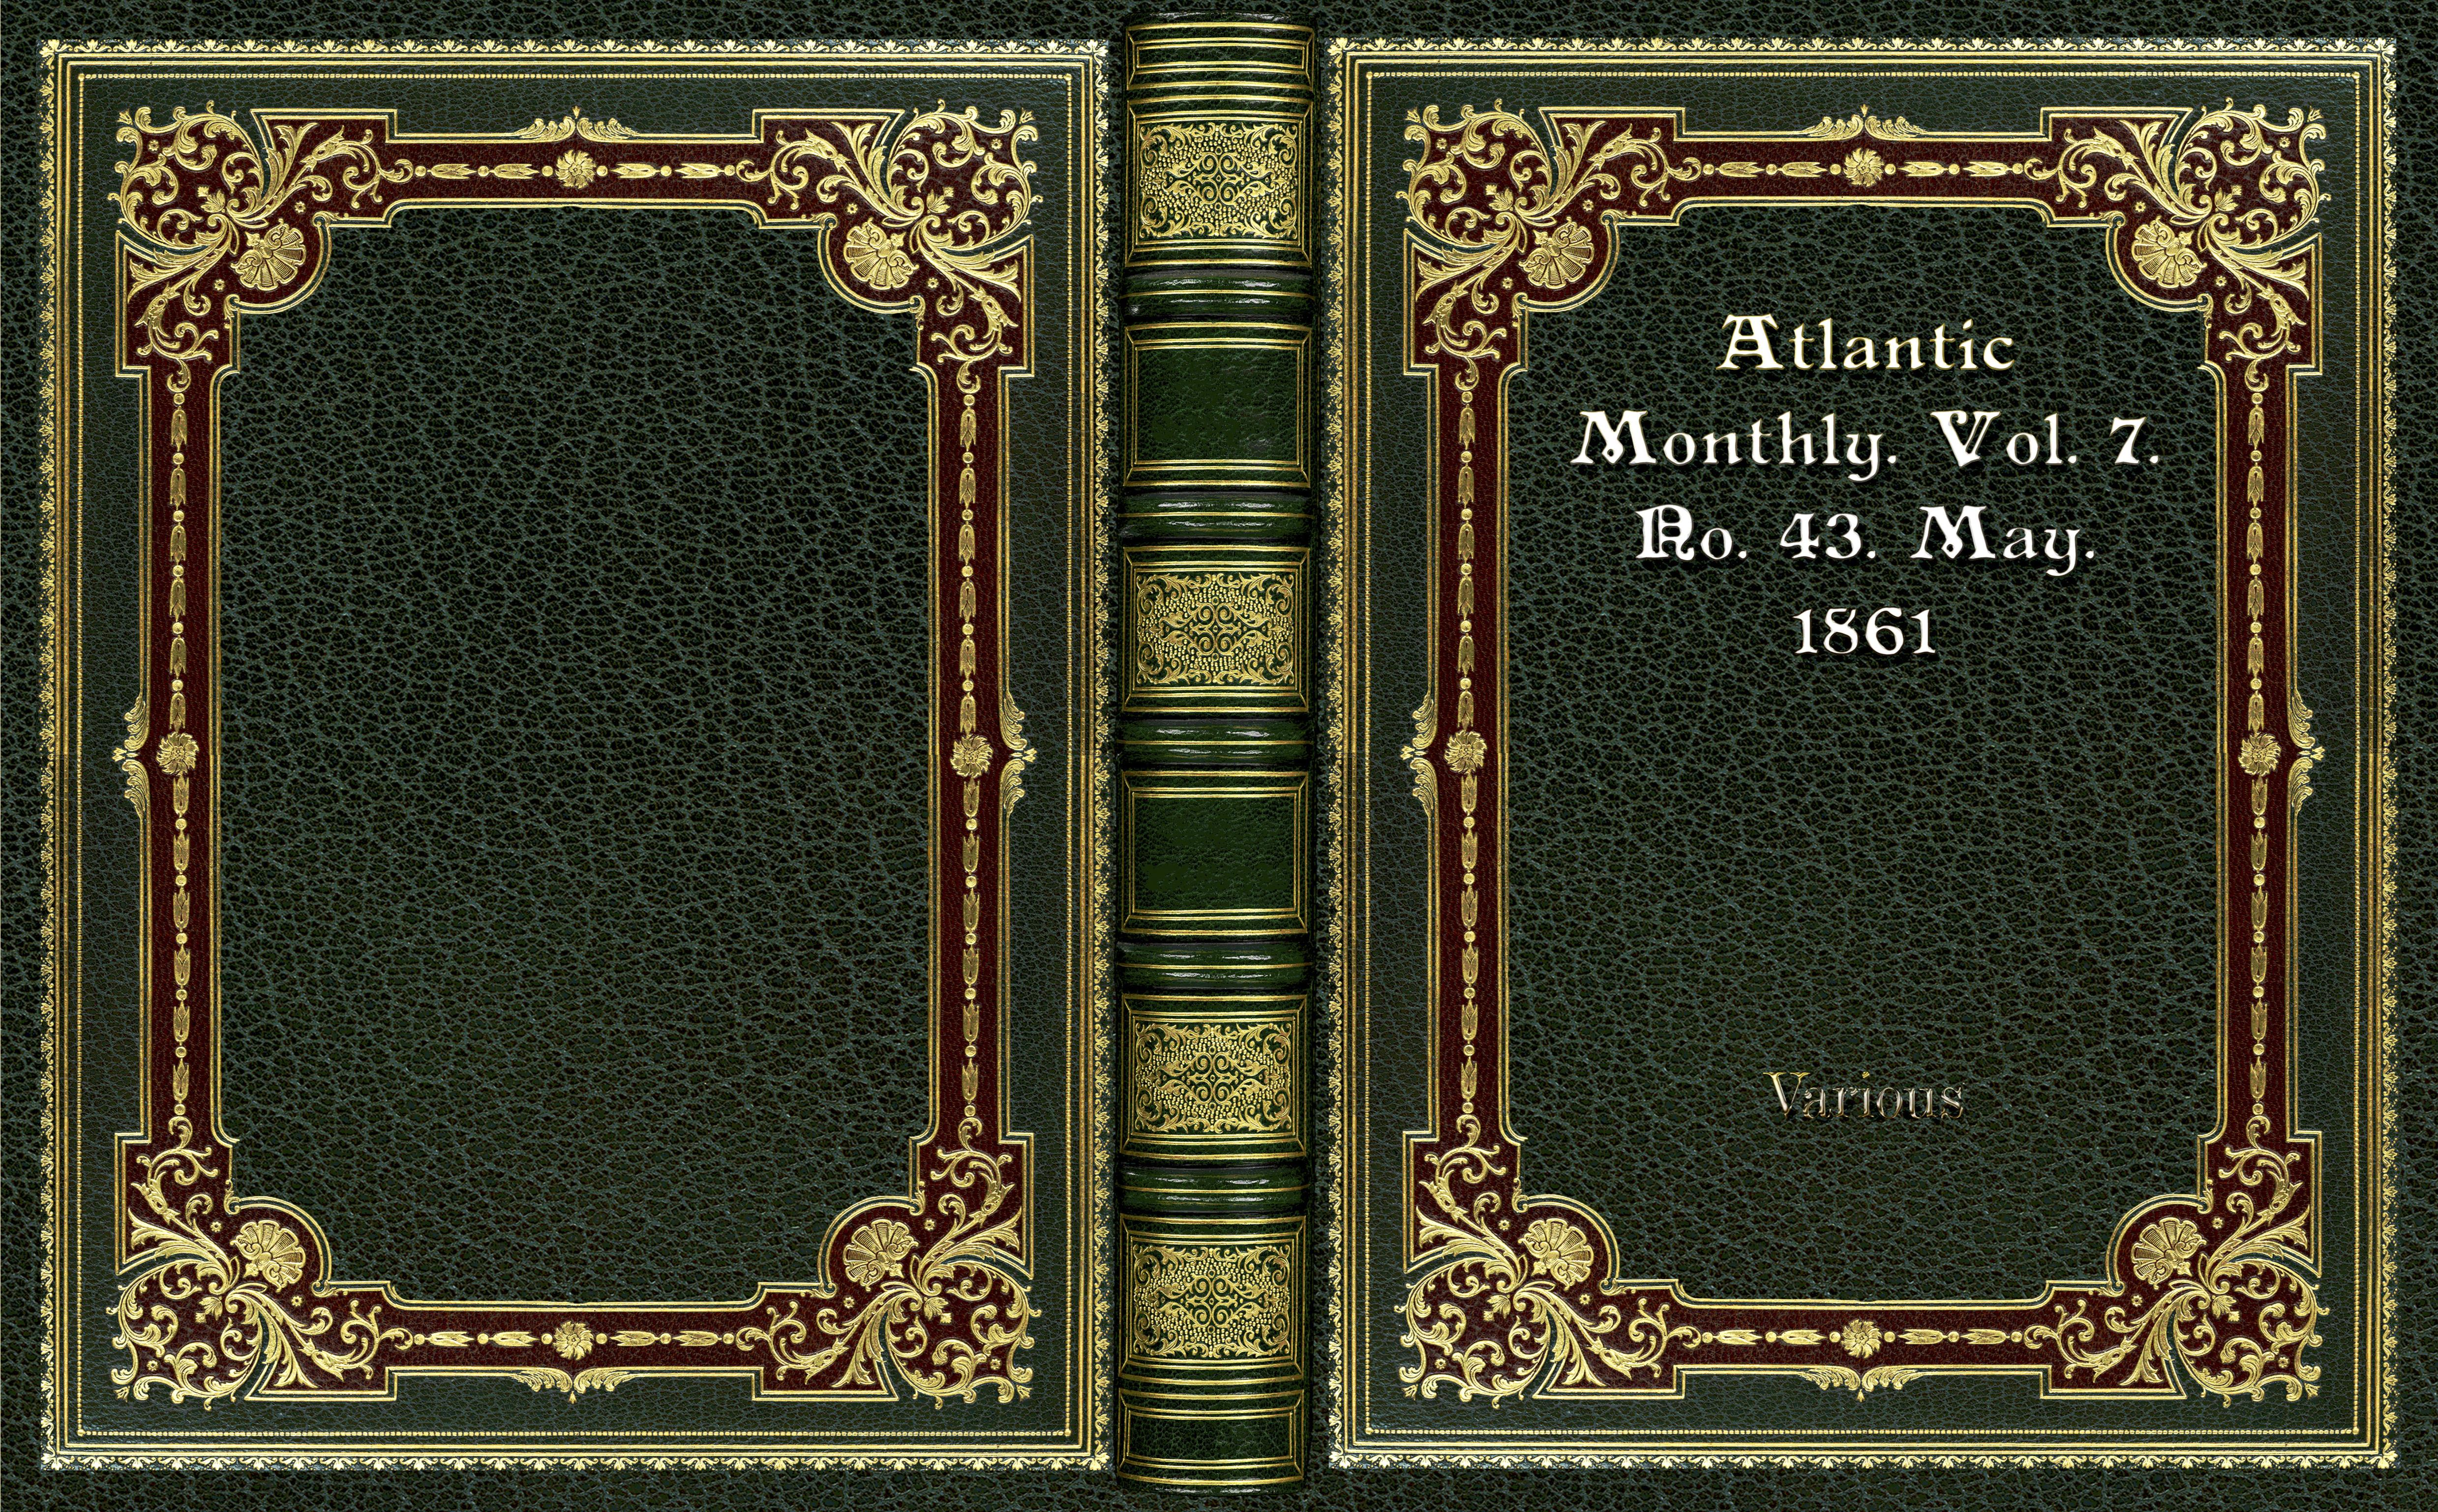 Atlantic Monthly. Vol. 7. No. 43. May. 1861 cover image